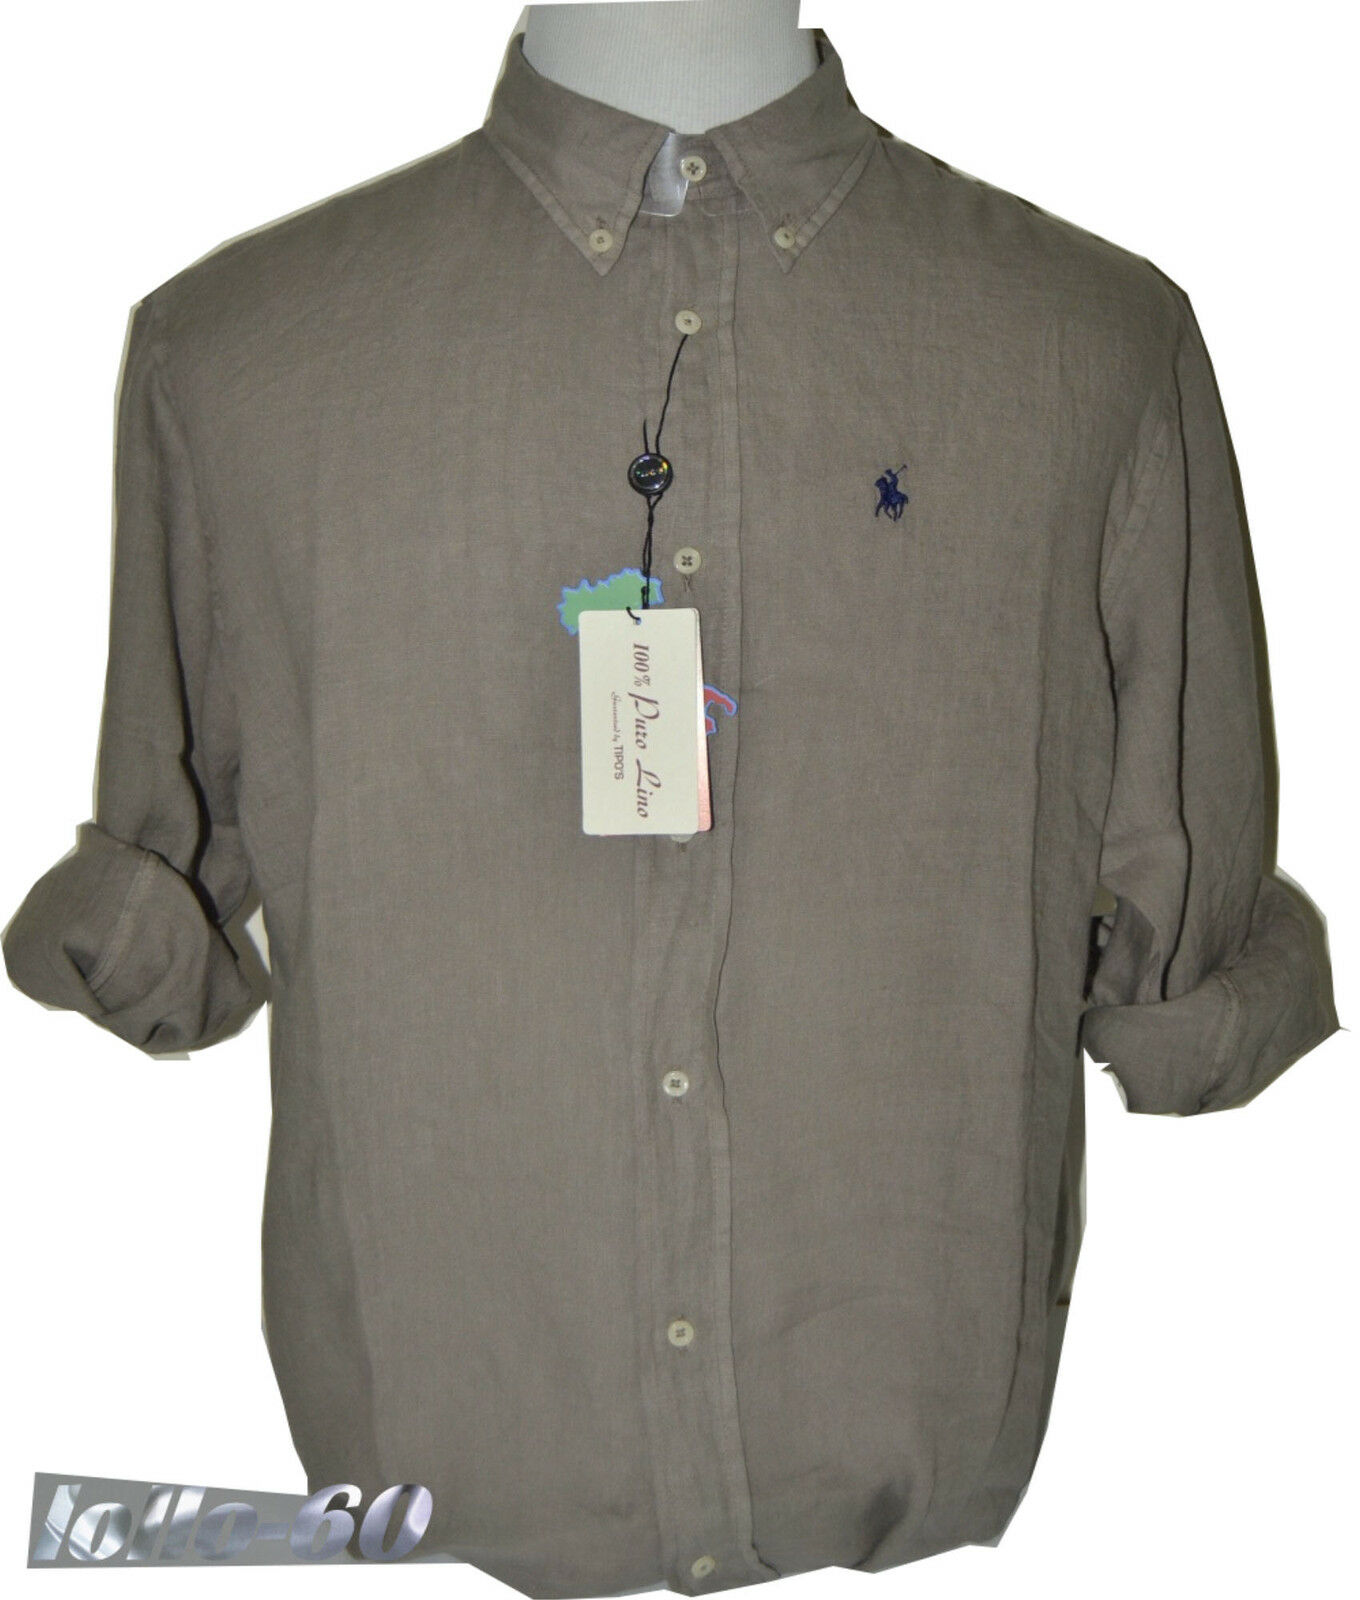 MEN'S SHIRTS Plus sizes puro lino KS 3XL - KM 4XL - KL 5XL - KKL 6XL mud